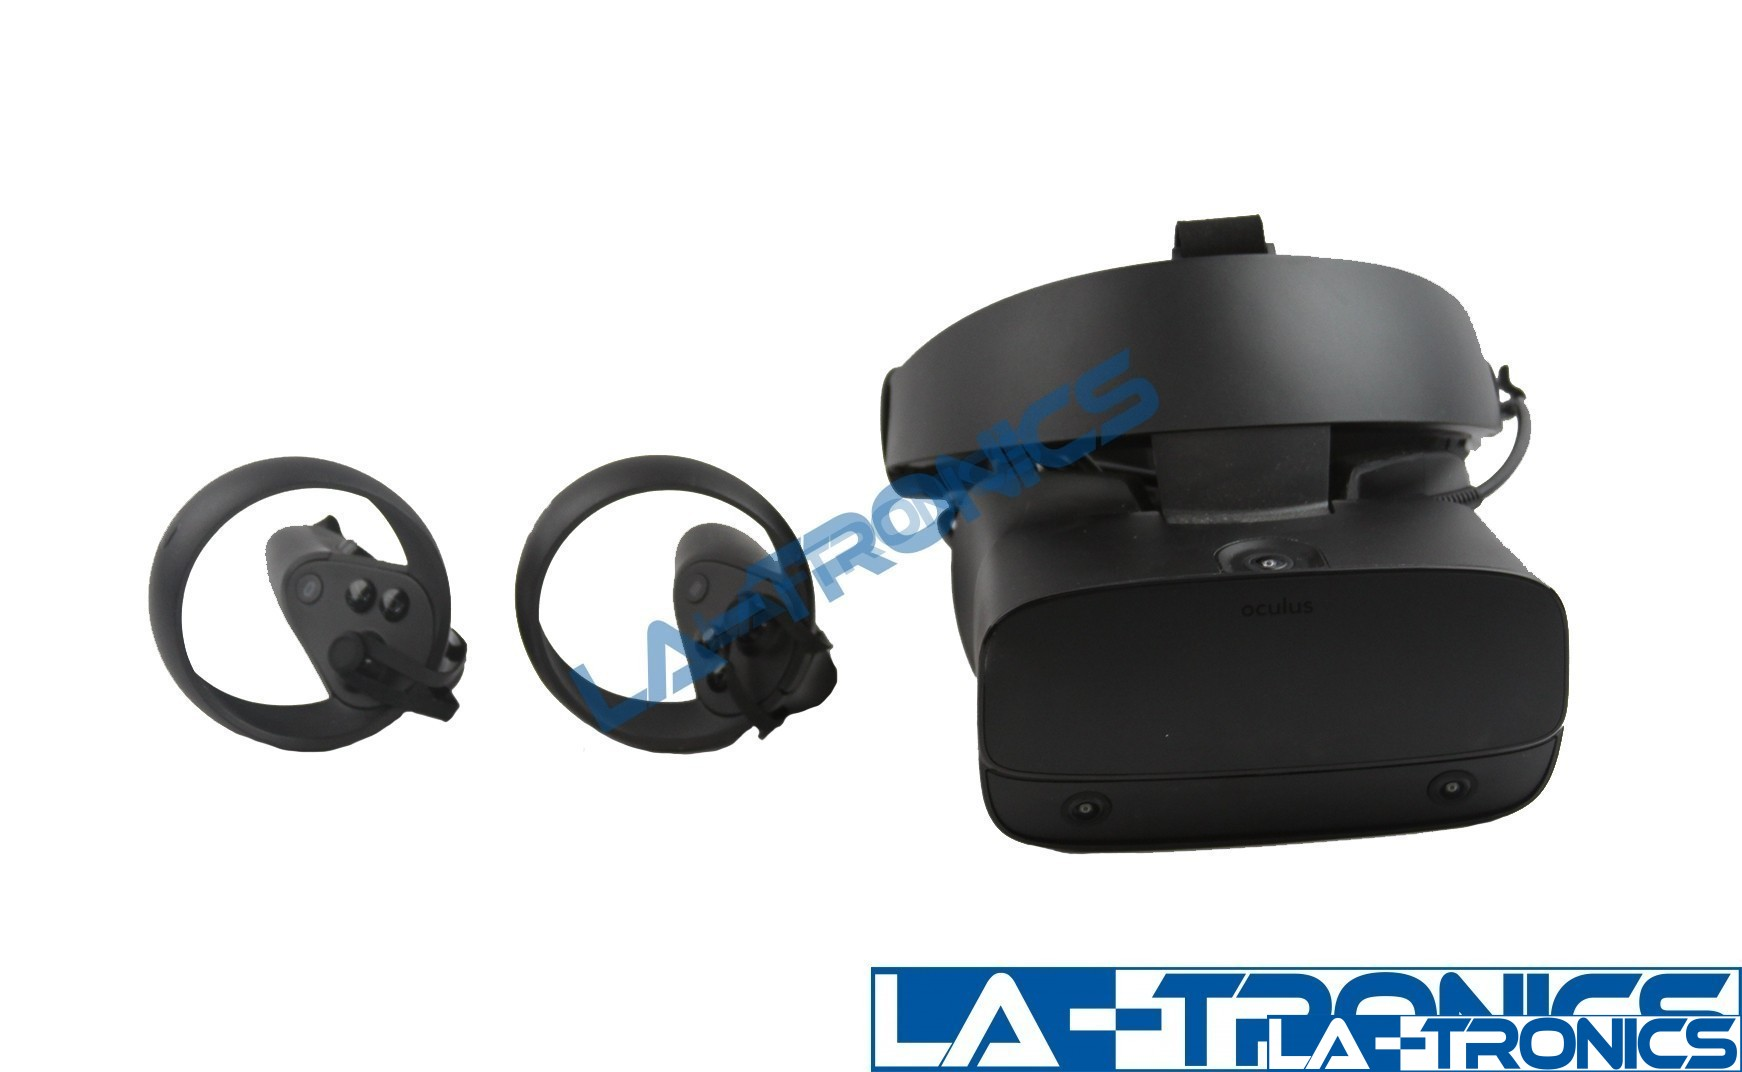 Lenovo Oculus Rift S PC-Powered VR Virtual Reality Gaming Headset - Open Box